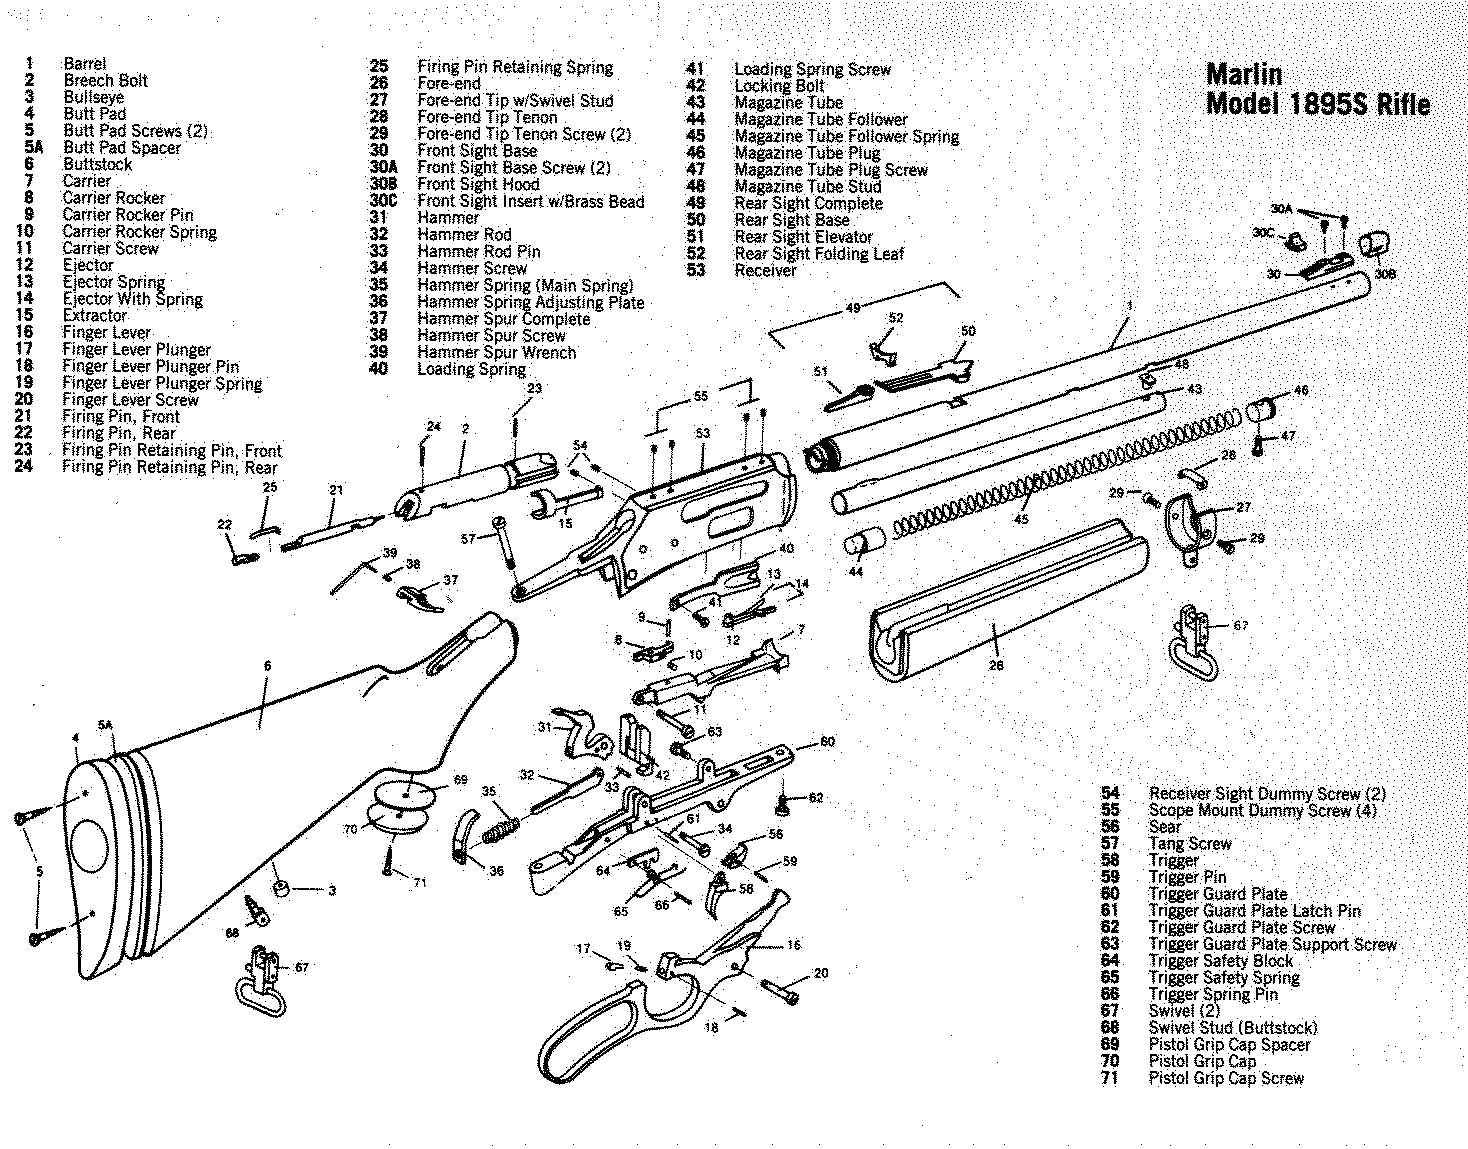 Marlin model 336 parts diagram data library mar1895 jpg 1468 1149 gunsmithing pinterest guns and weapons rh pinterest com marlin camp 9 parts diagram marlin 30 30 parts diagram ccuart Image collections